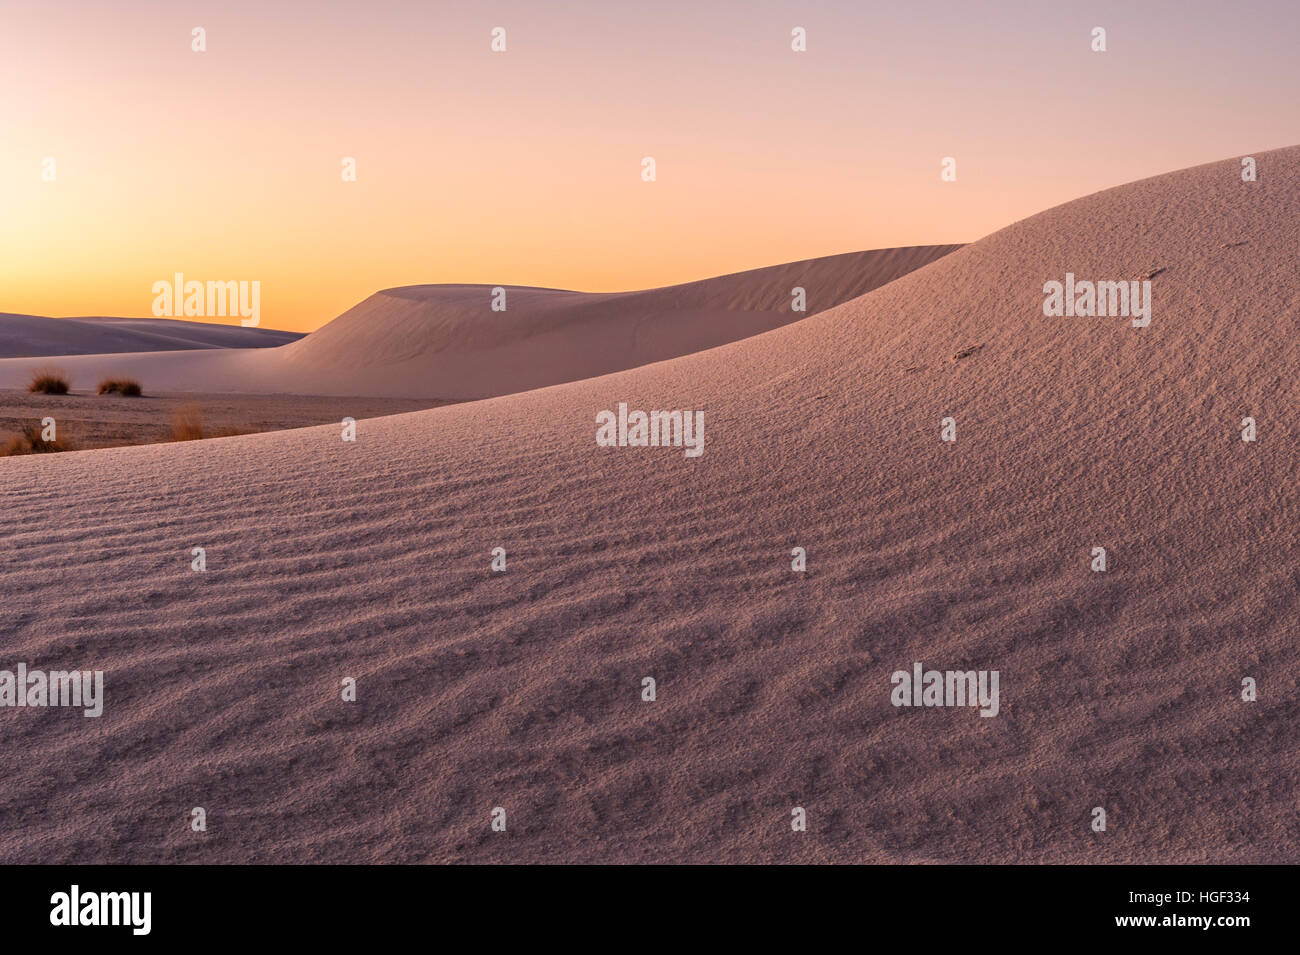 Typical dune formations at White Sands National Monument in New Mexico, NM, USA. - Stock Image